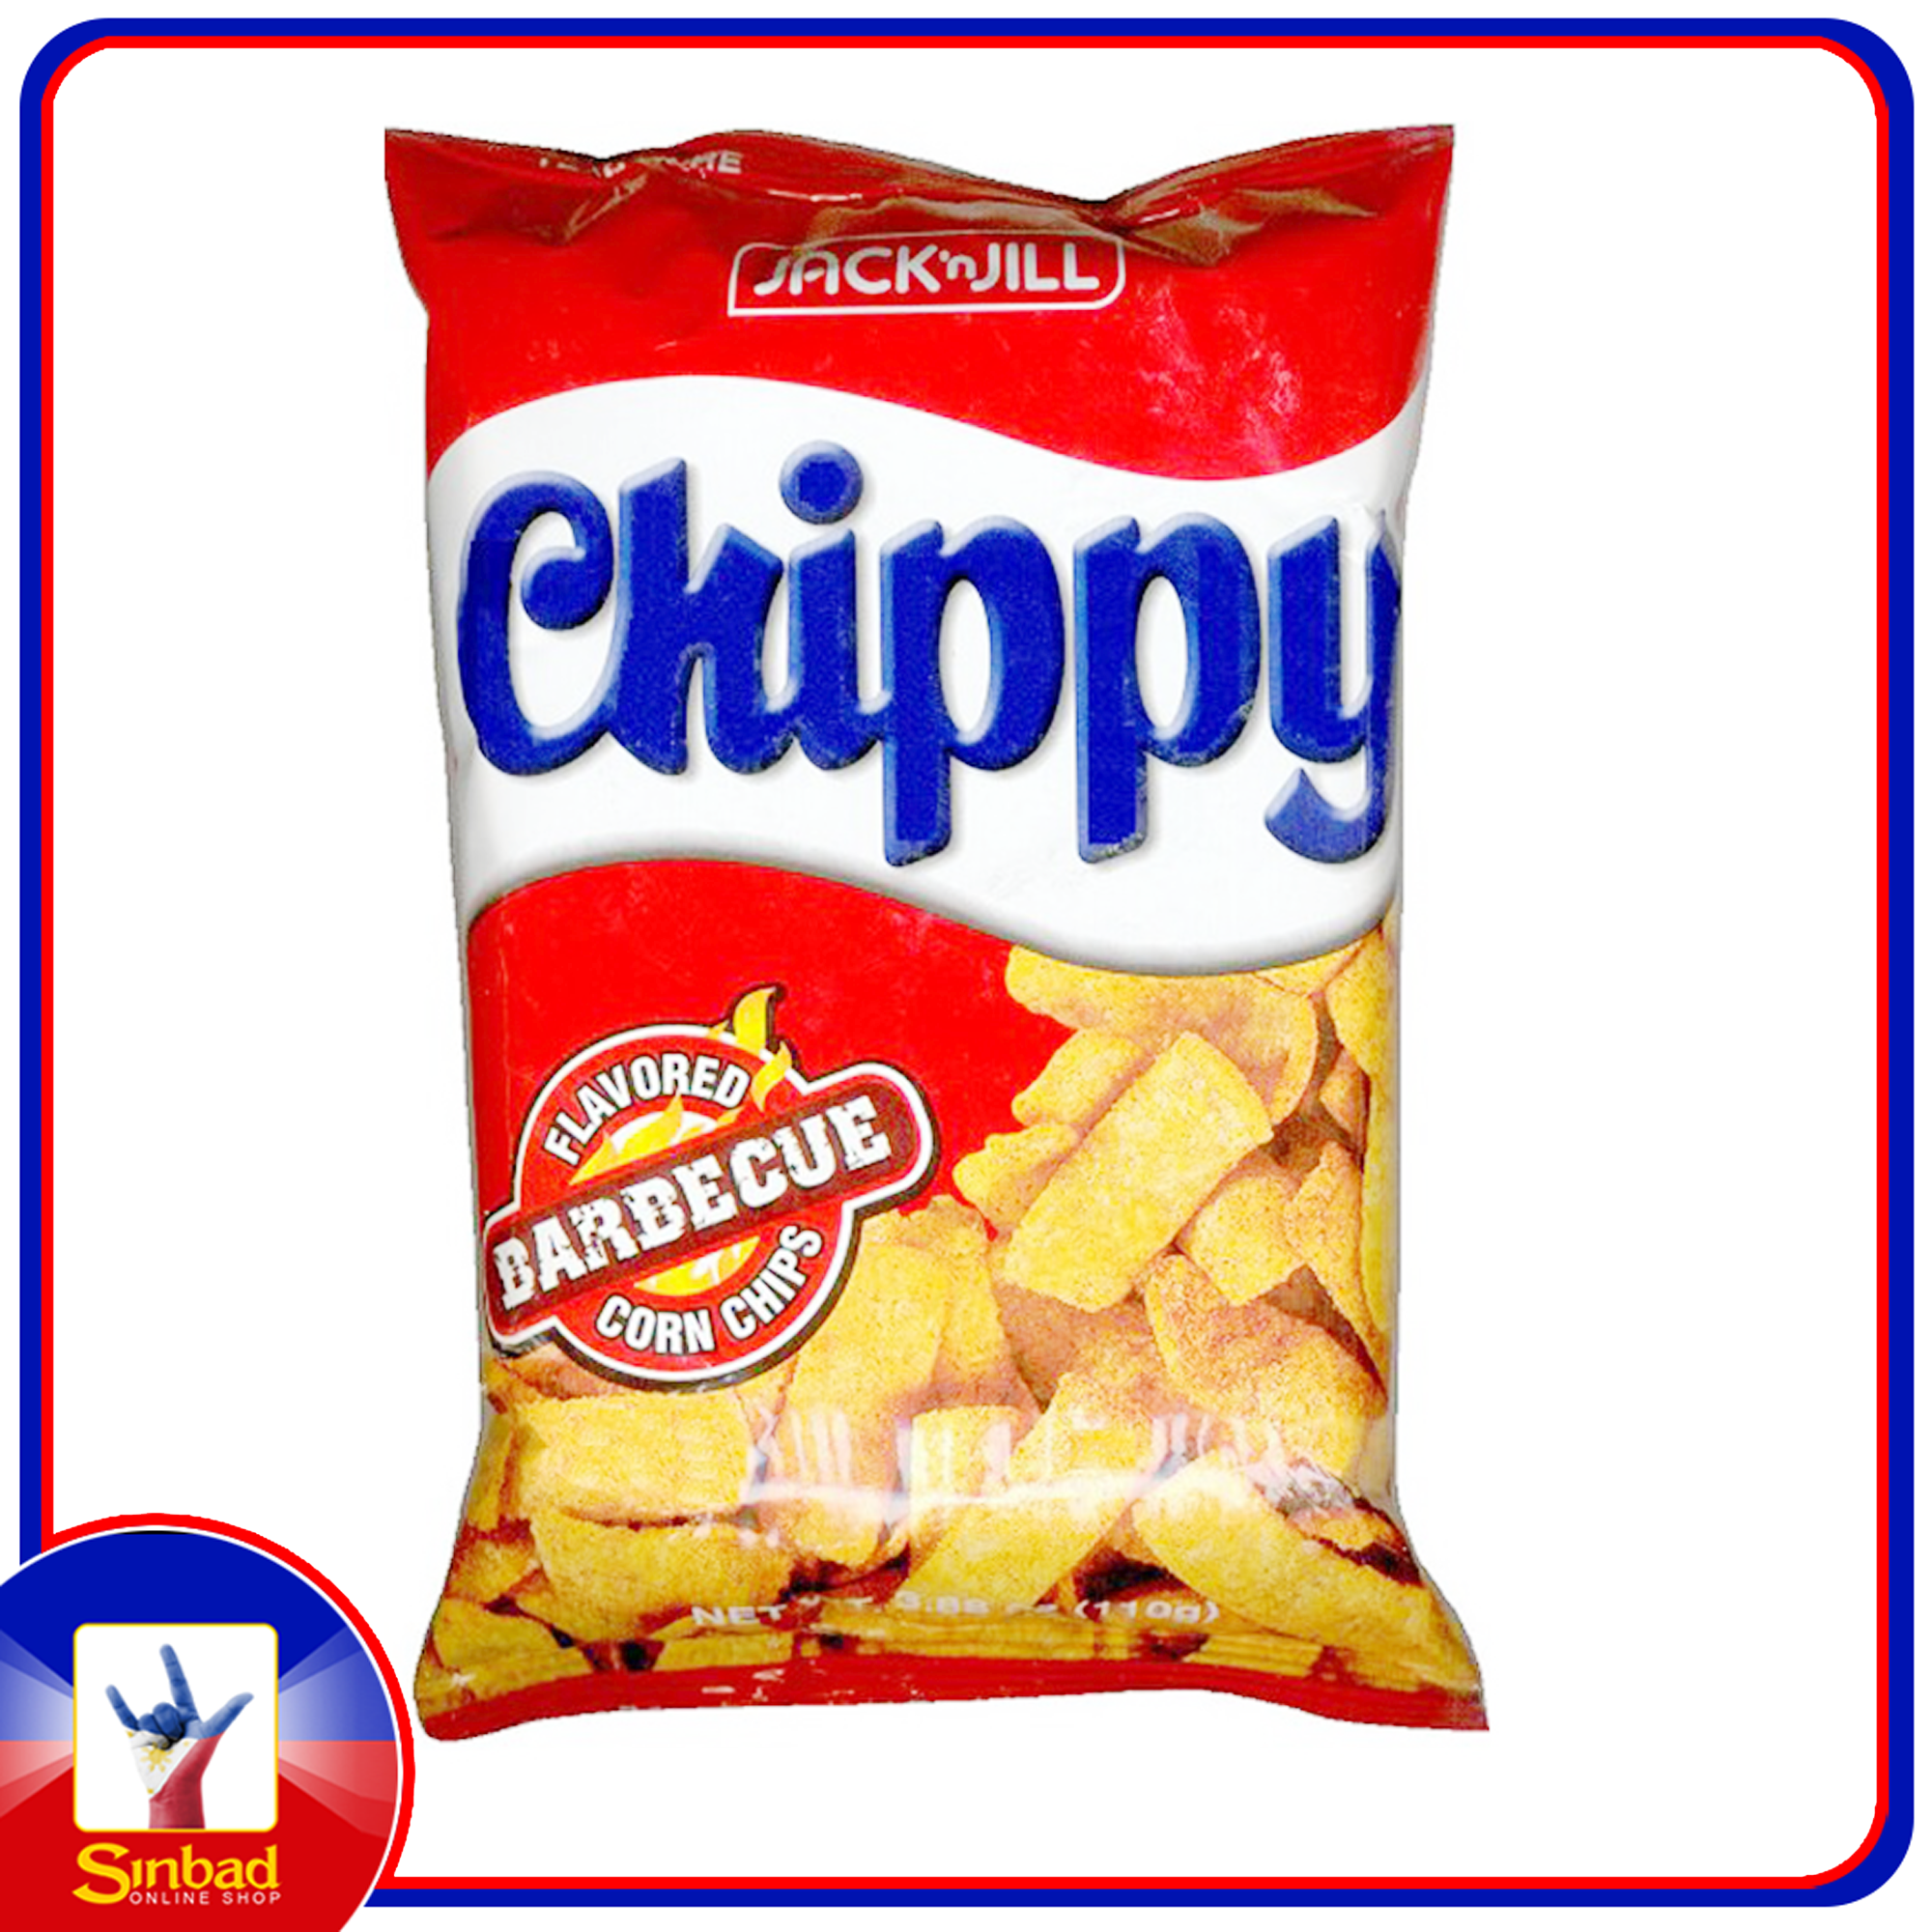 Jack N' Jill CHIPPY BARBECUE CORN CHIPS 110g